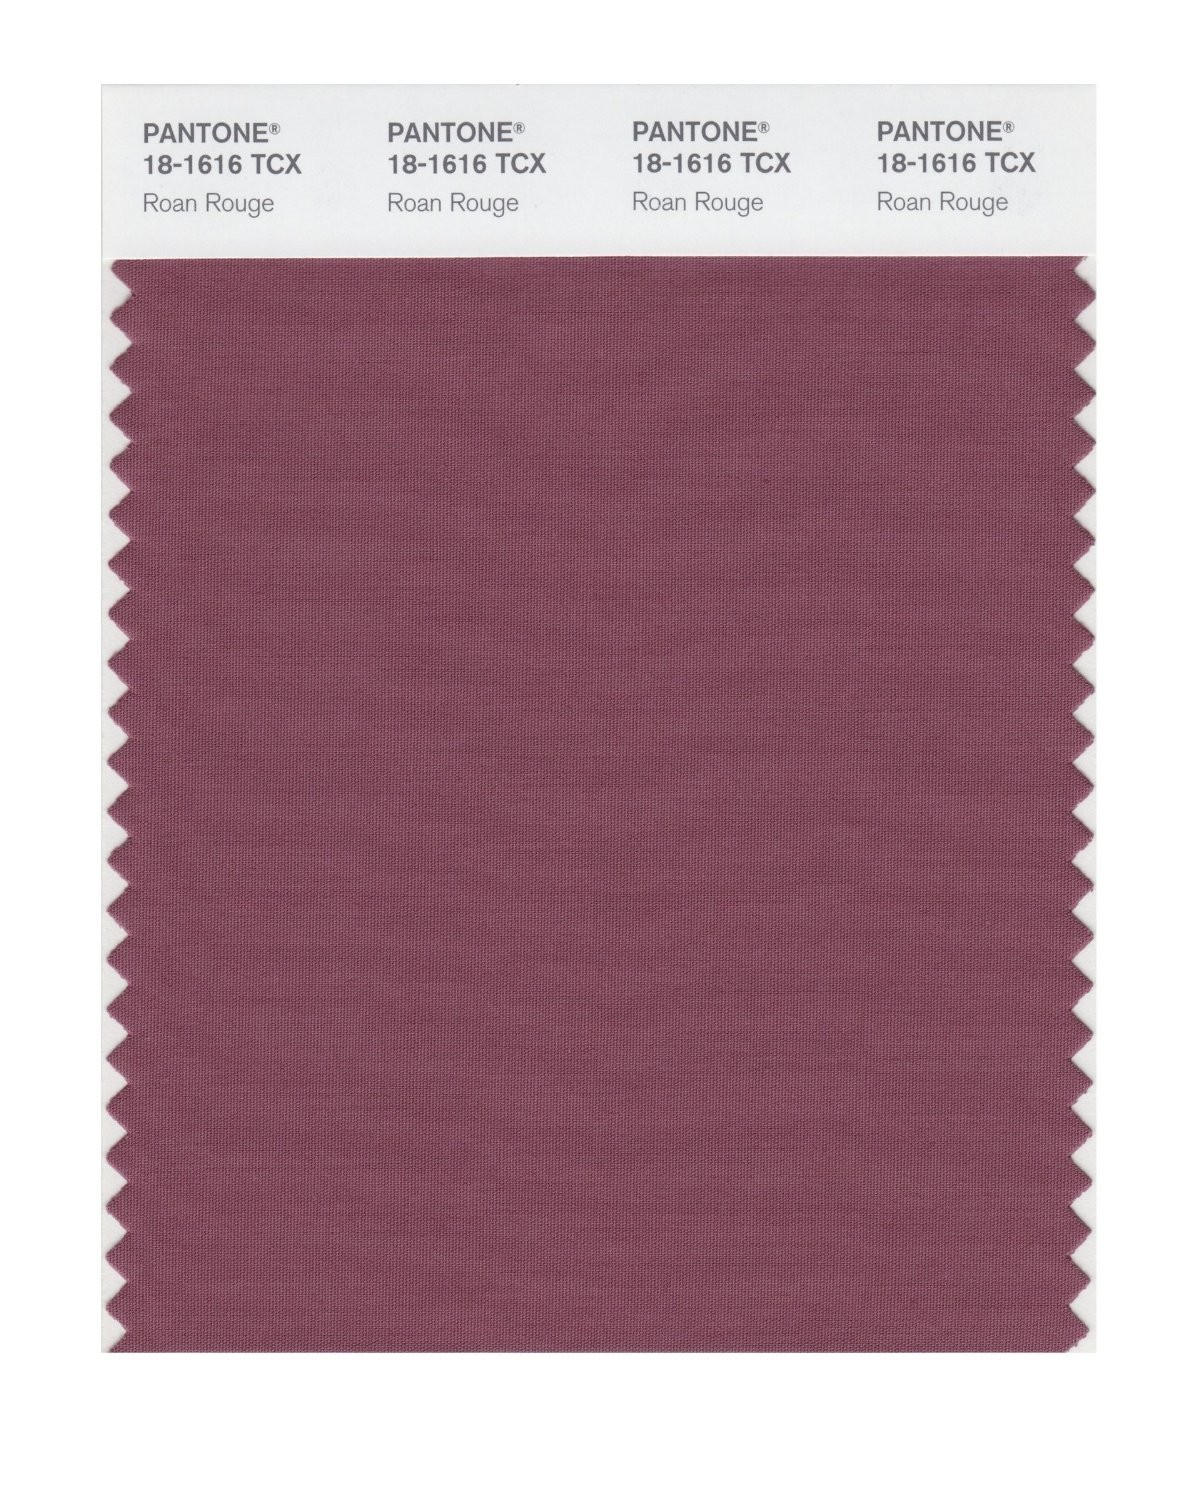 Pantone 18-1616 TCX Swatch Card Roan Rouge